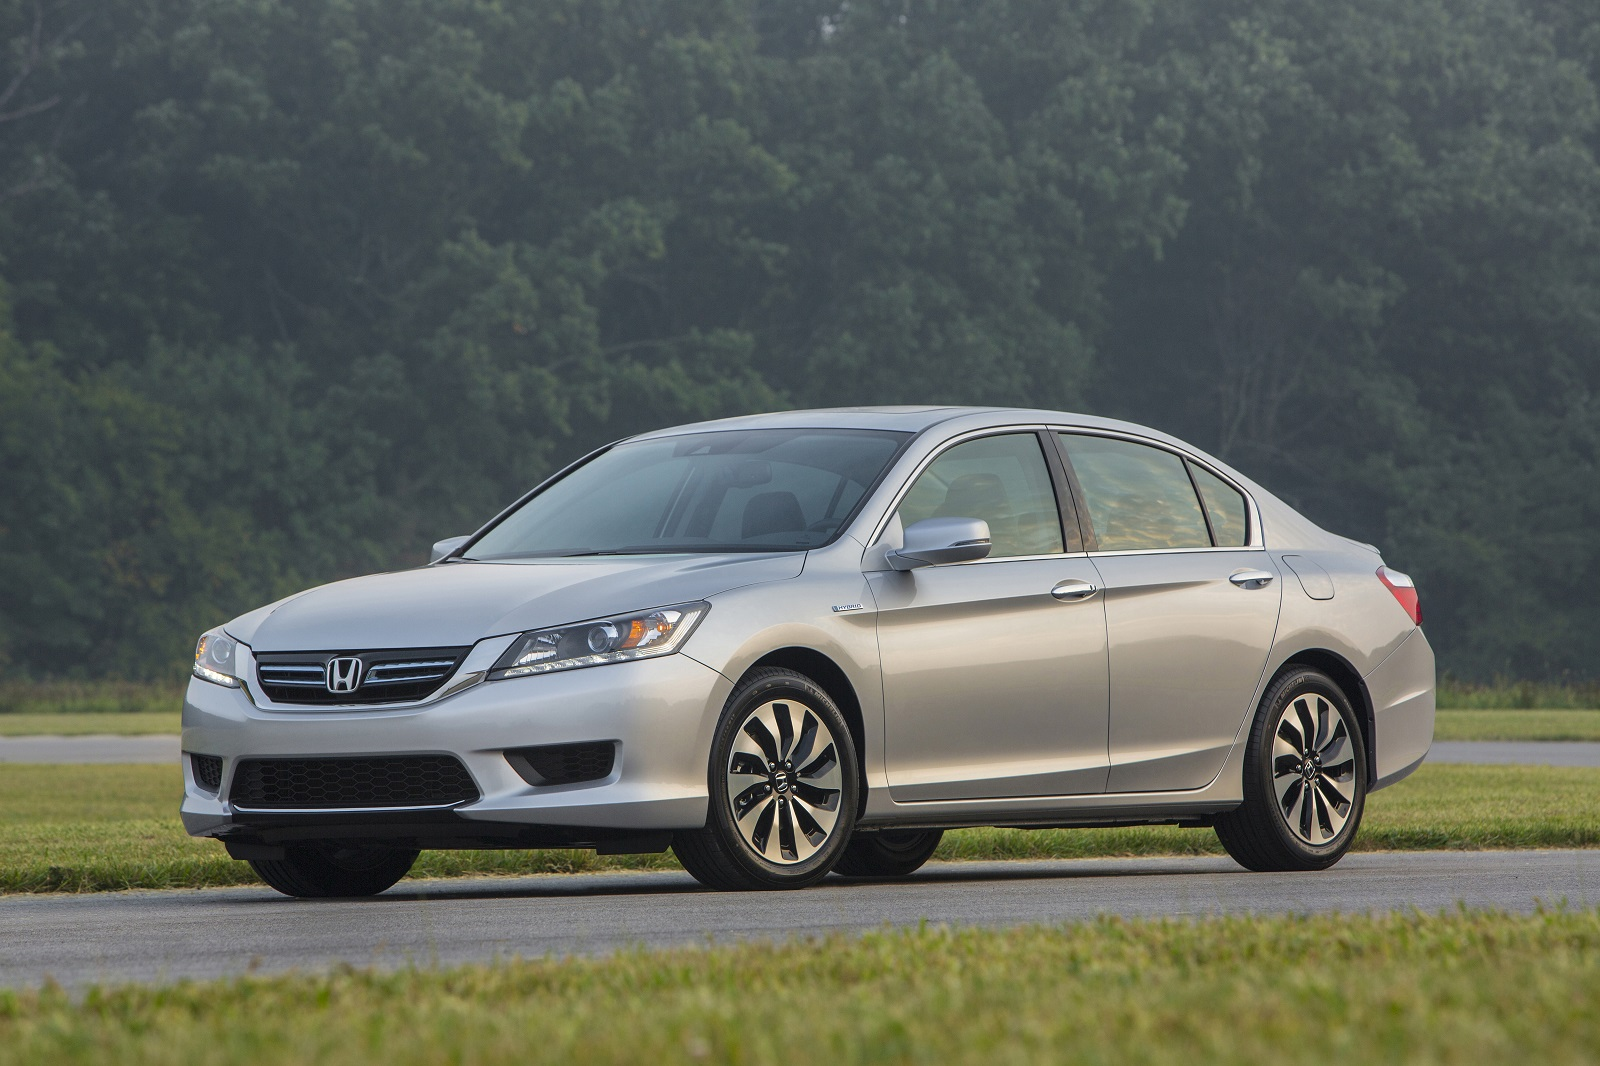 Honda Accord Hybrid #1